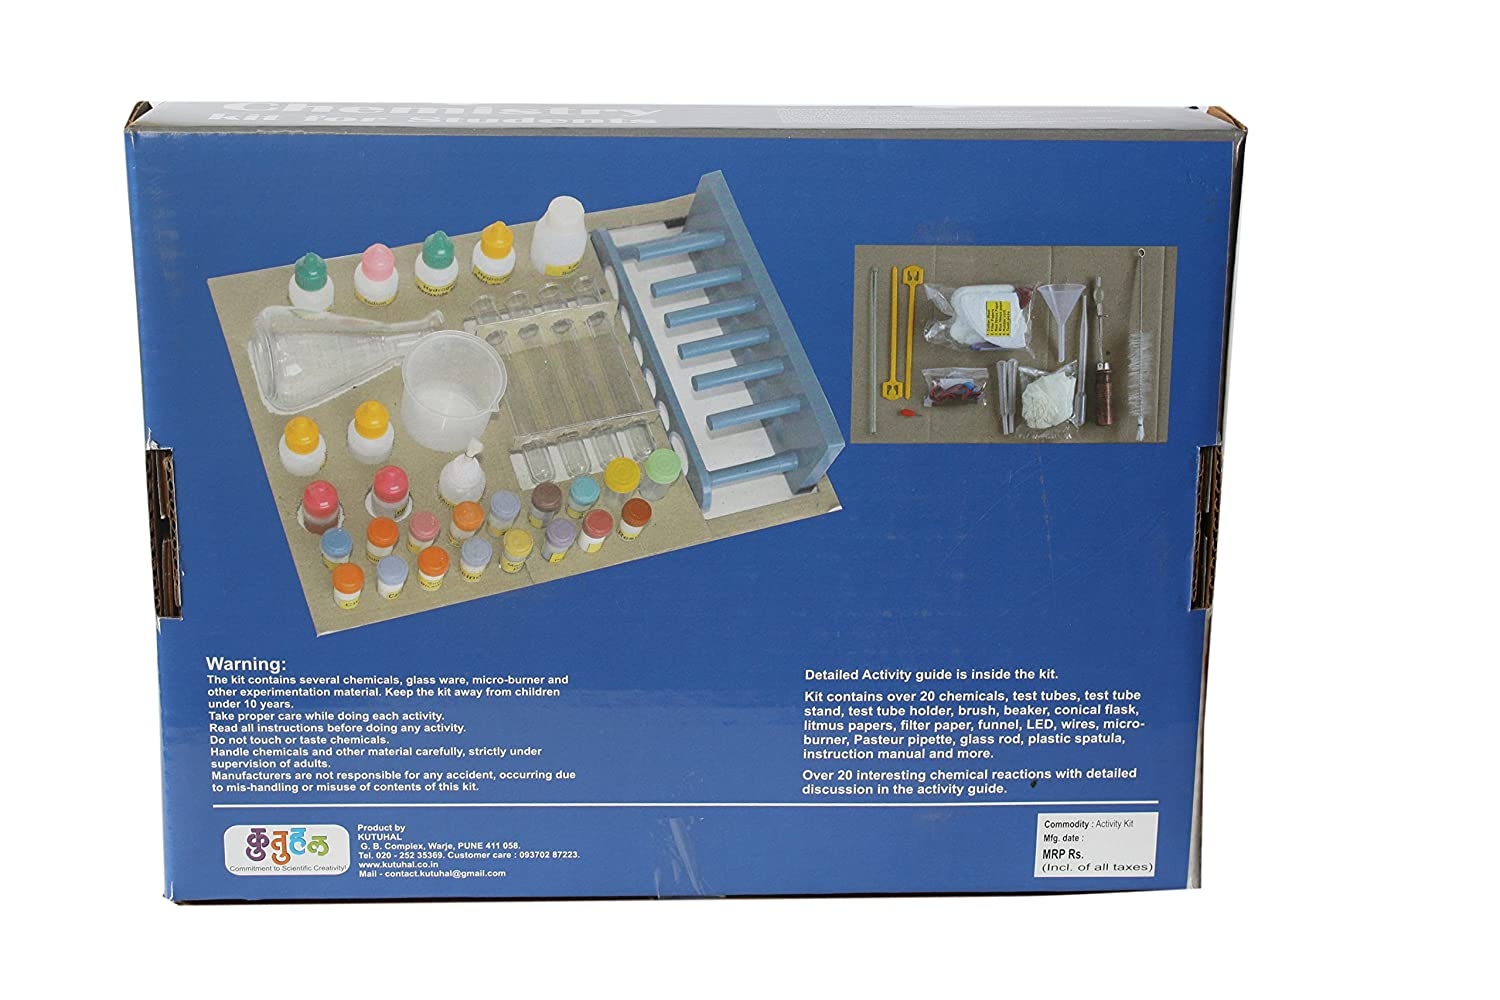 Buy kutuhal do it yourself chemistry kit educational learning toy buy kutuhal do it yourself chemistry kit educational learning toy online at low prices in india amazon solutioingenieria Gallery